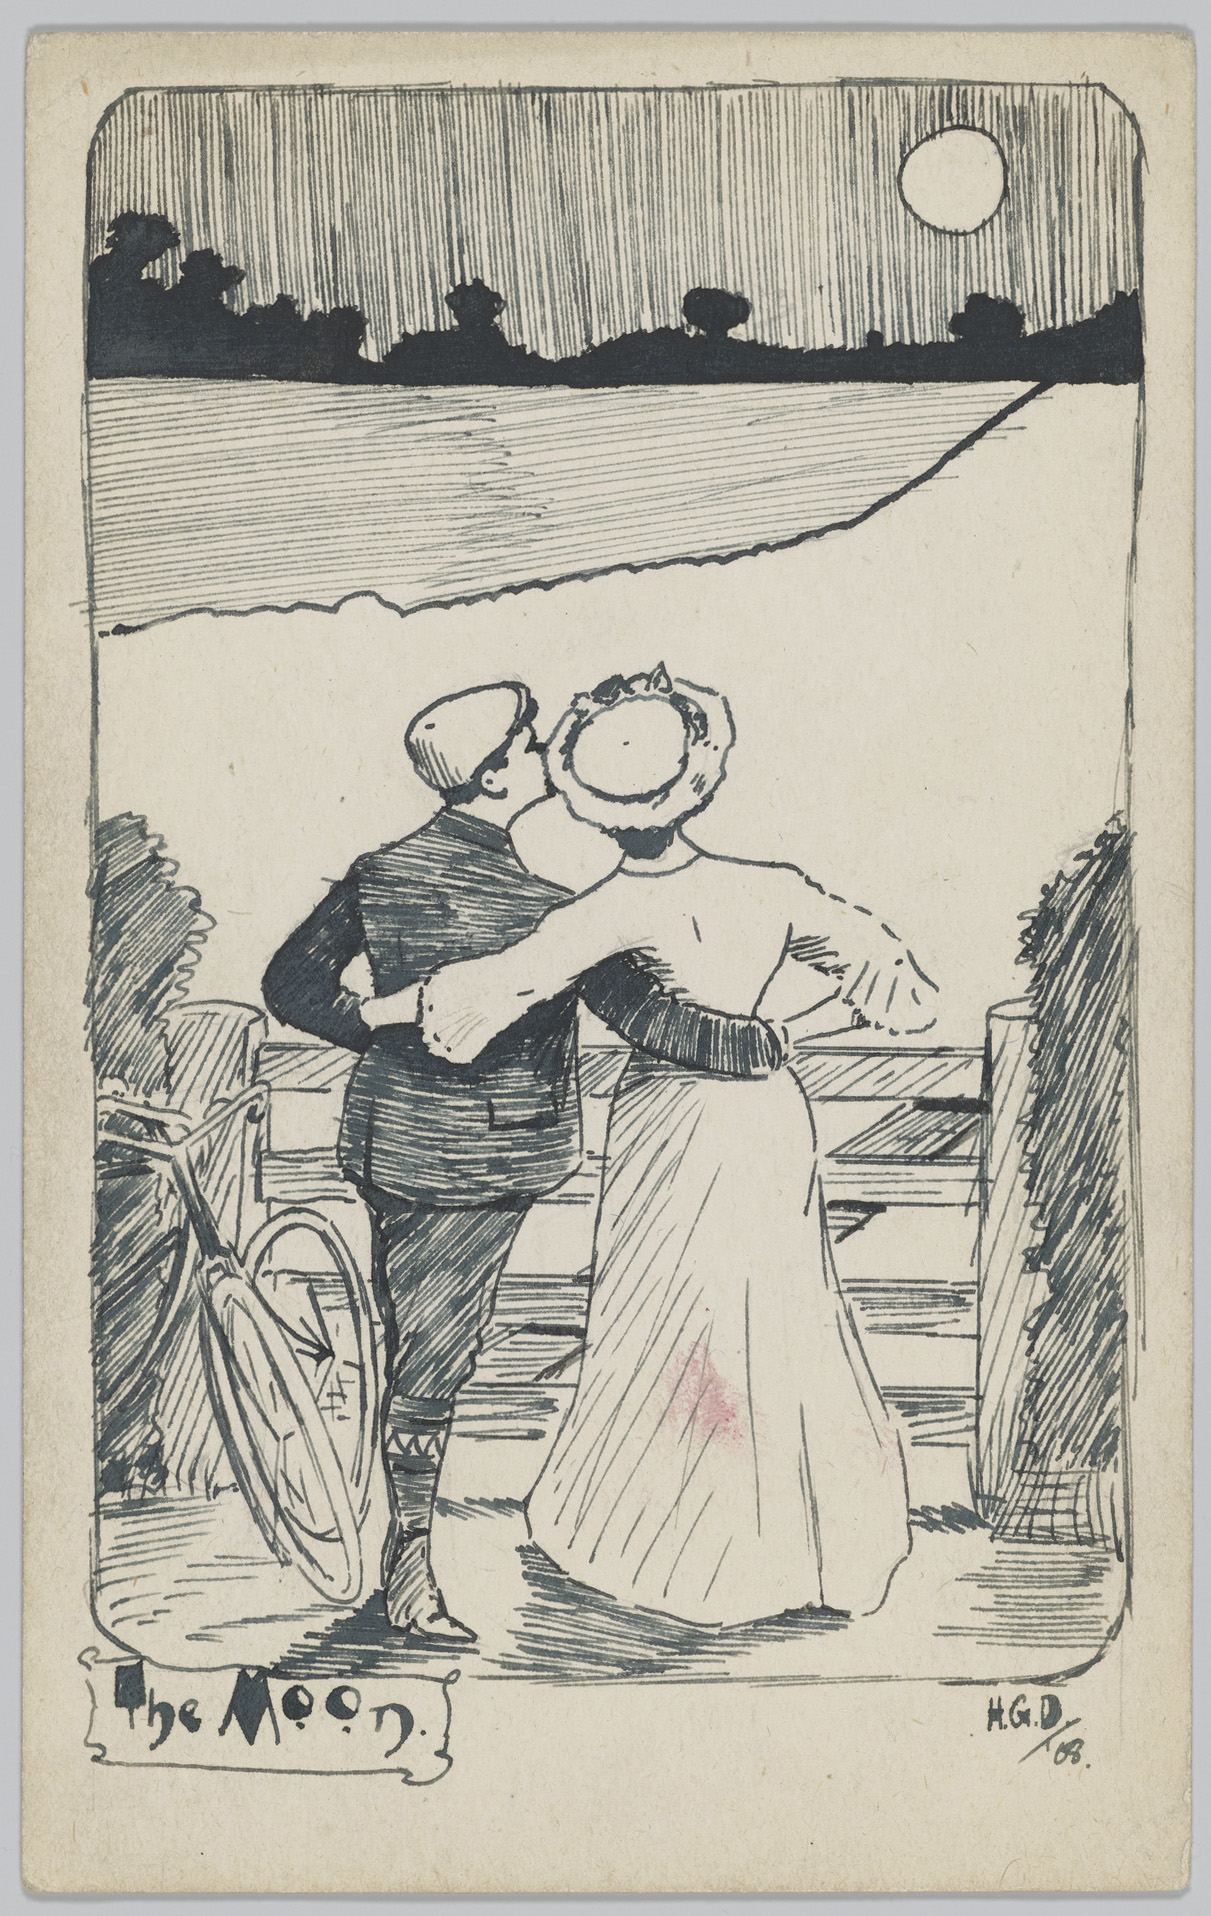 Ilustration of a couple holding each other looking up to the moon.